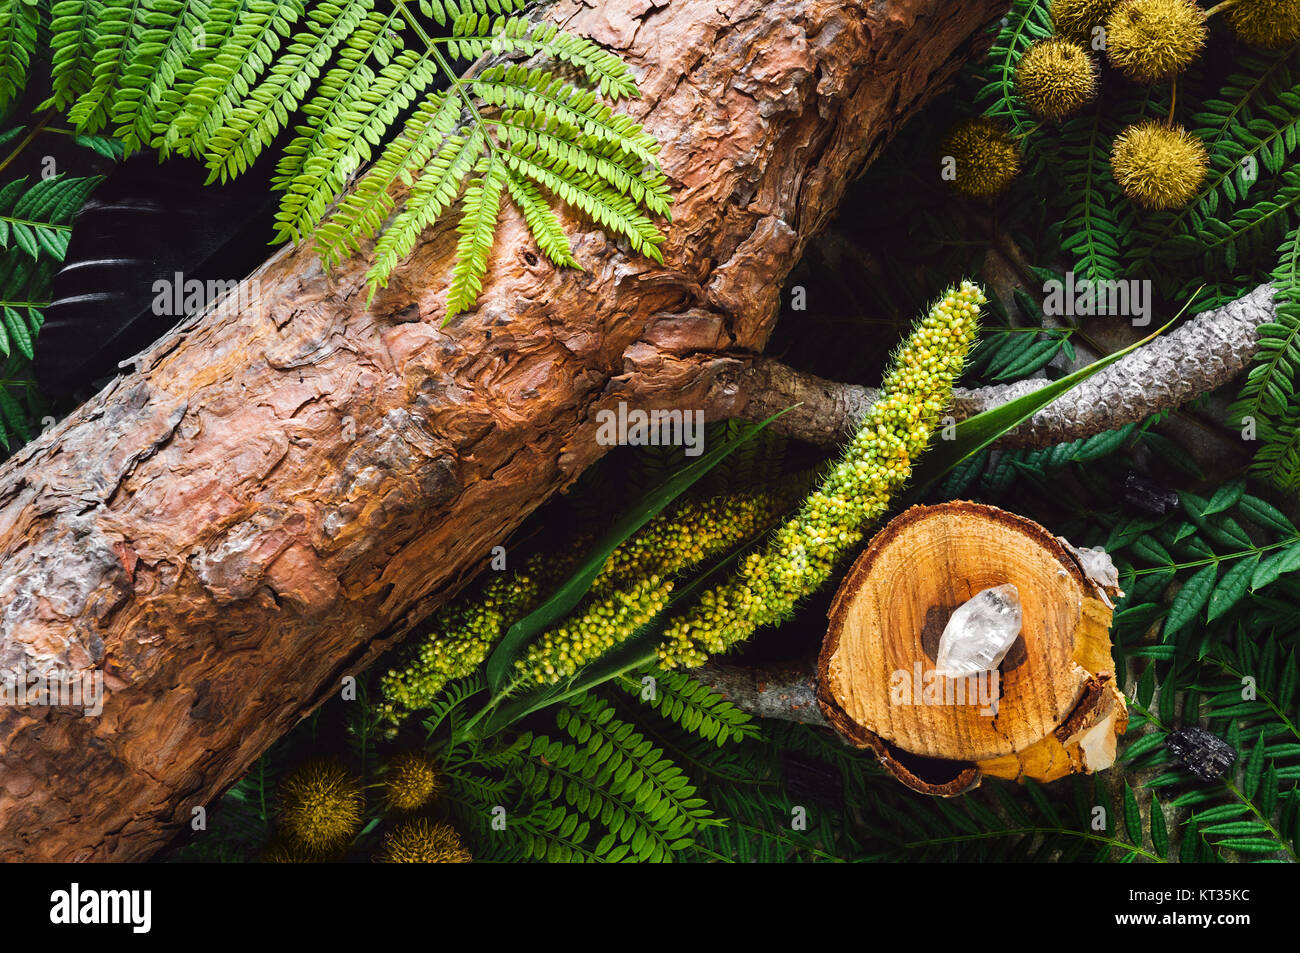 A Collection of Wood, Botanicals and Crystals. - Stock Image